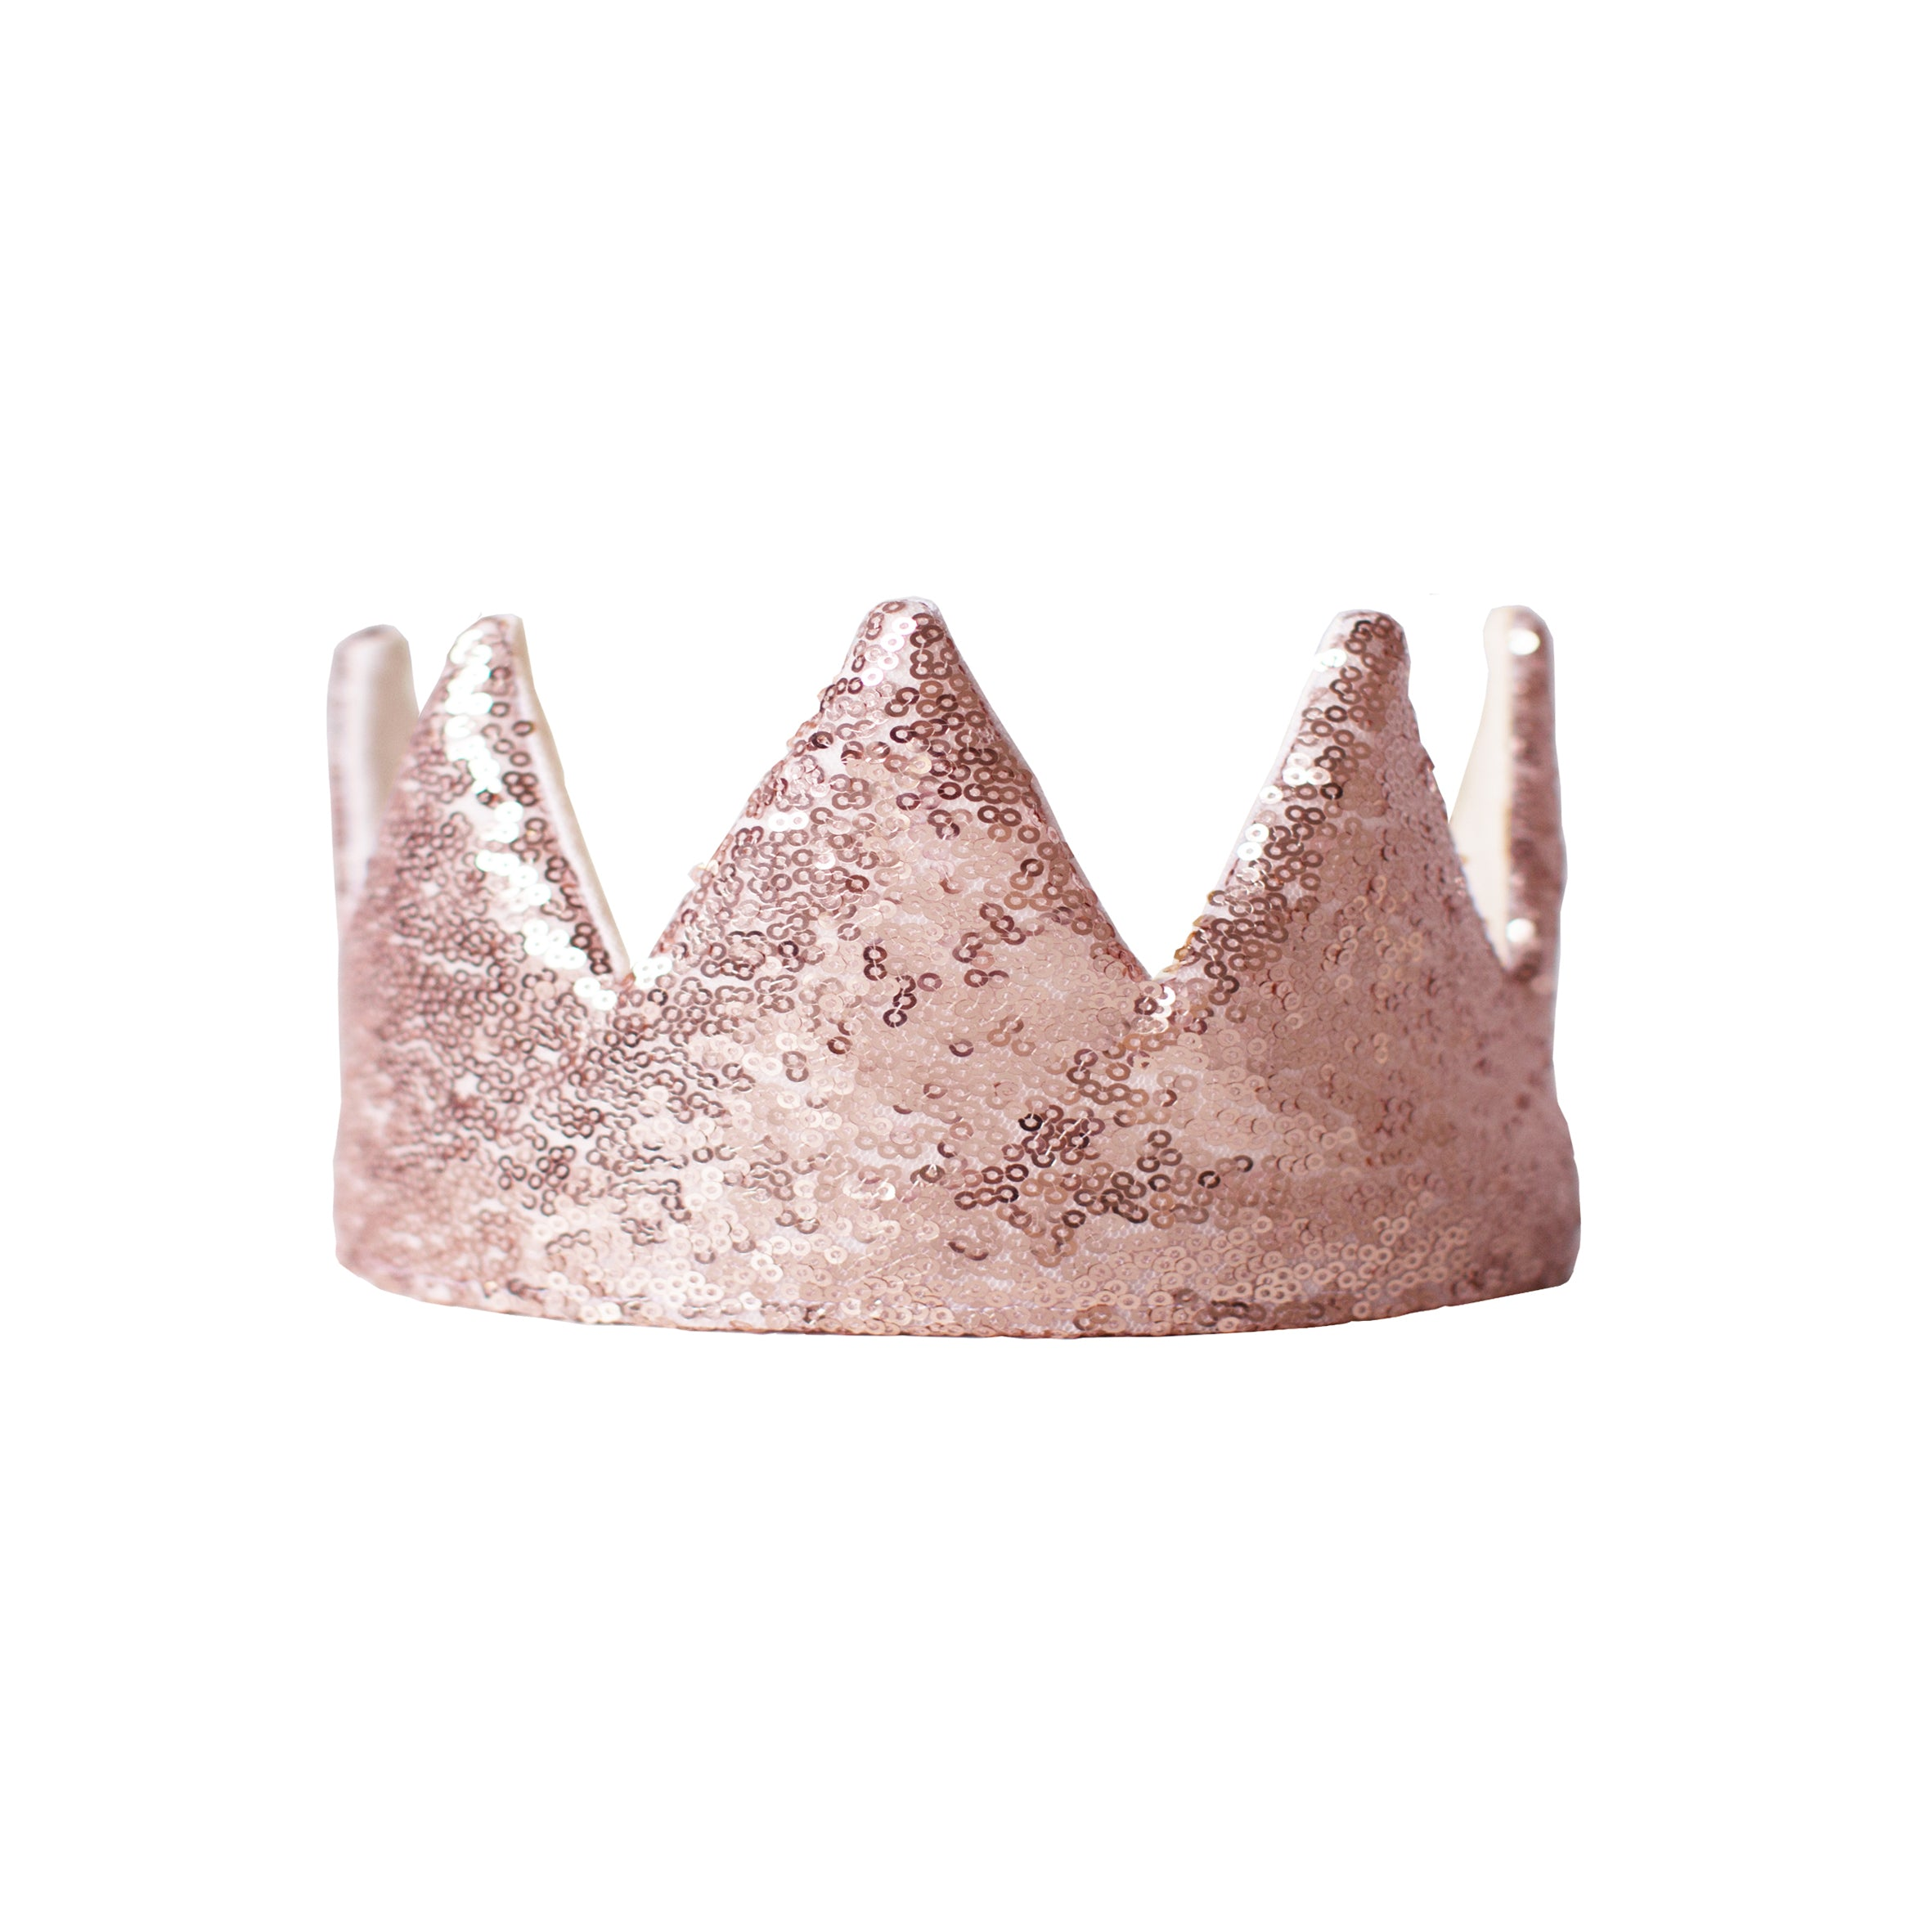 Fable Heart Toy Rose Gold Crown £10 to fit your dollies and teddies